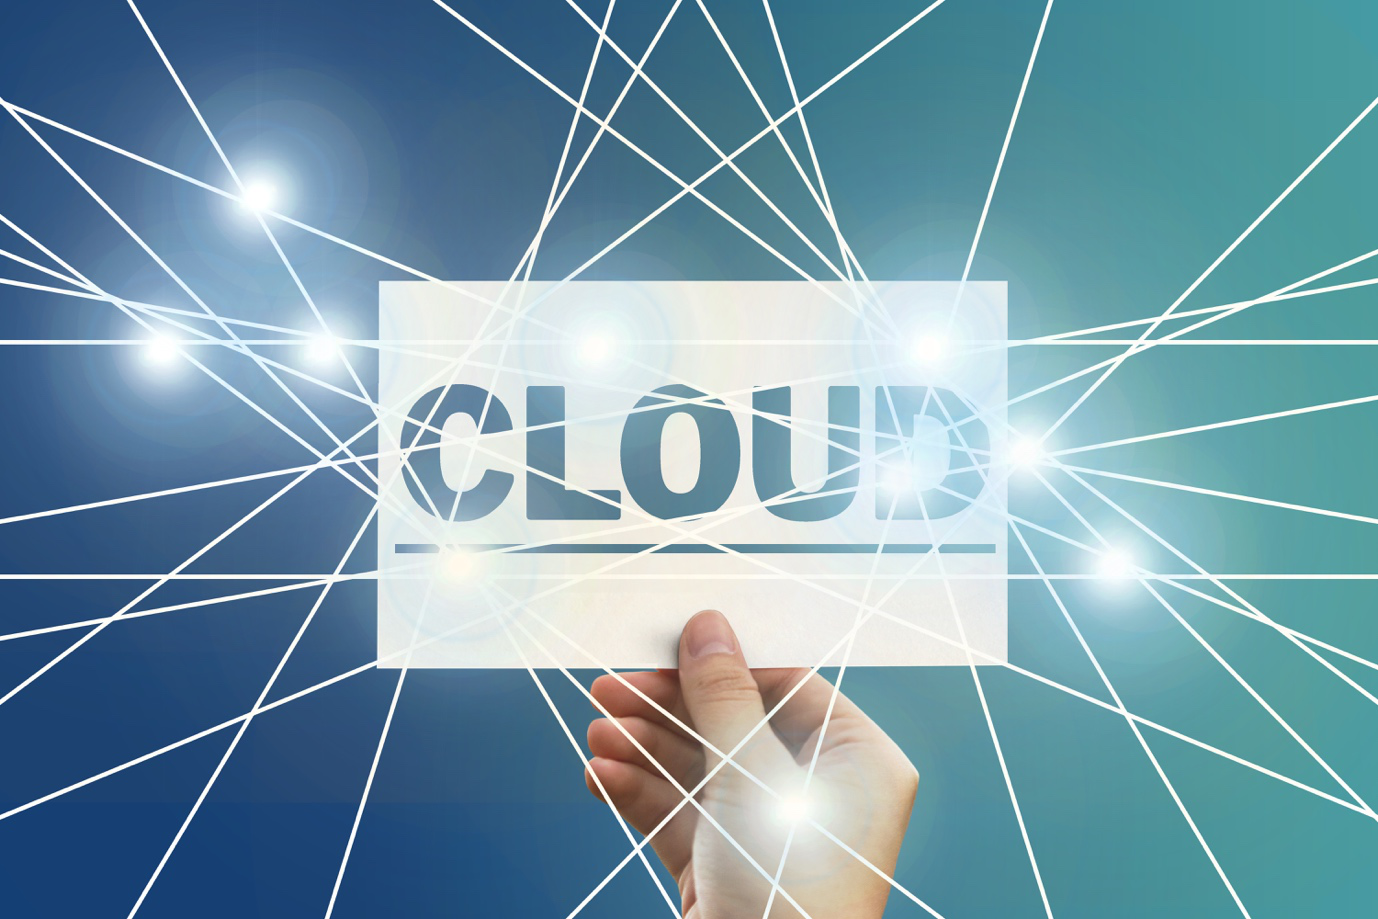 What are the benefits of cloud storage?